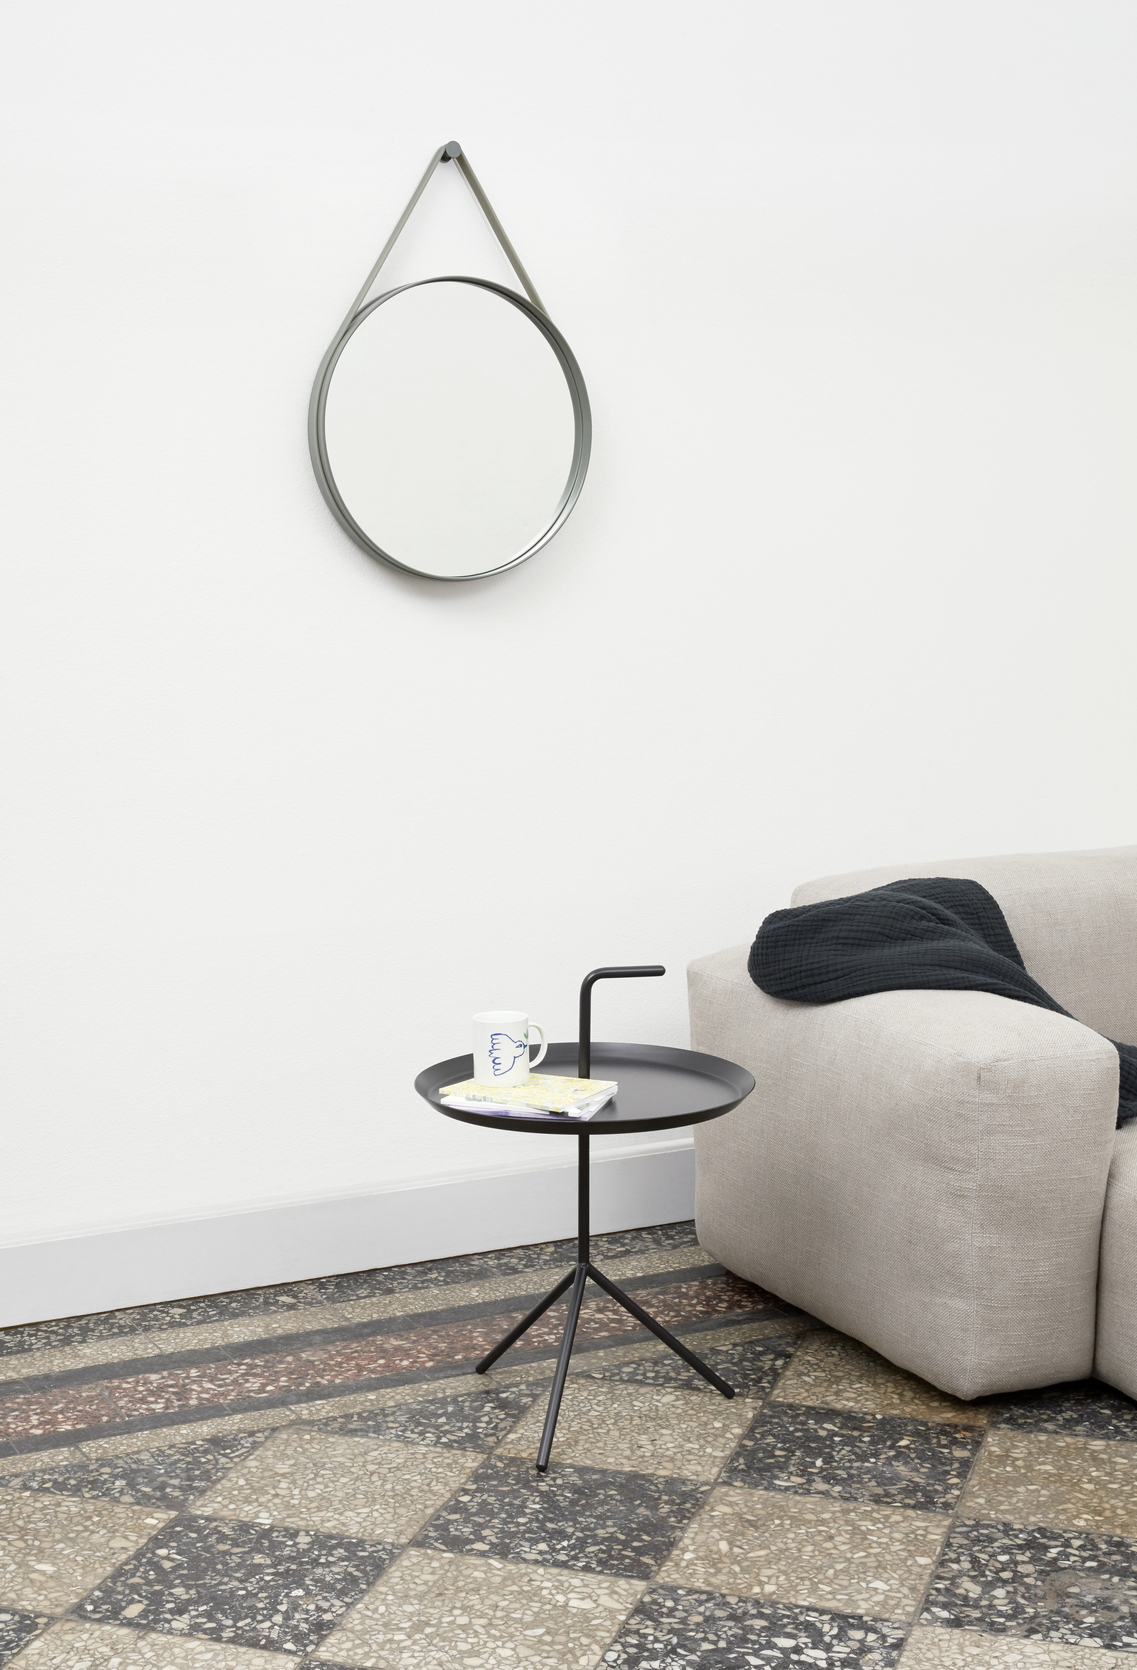 Strap Mirror grey_DLM Side Table black.jpg